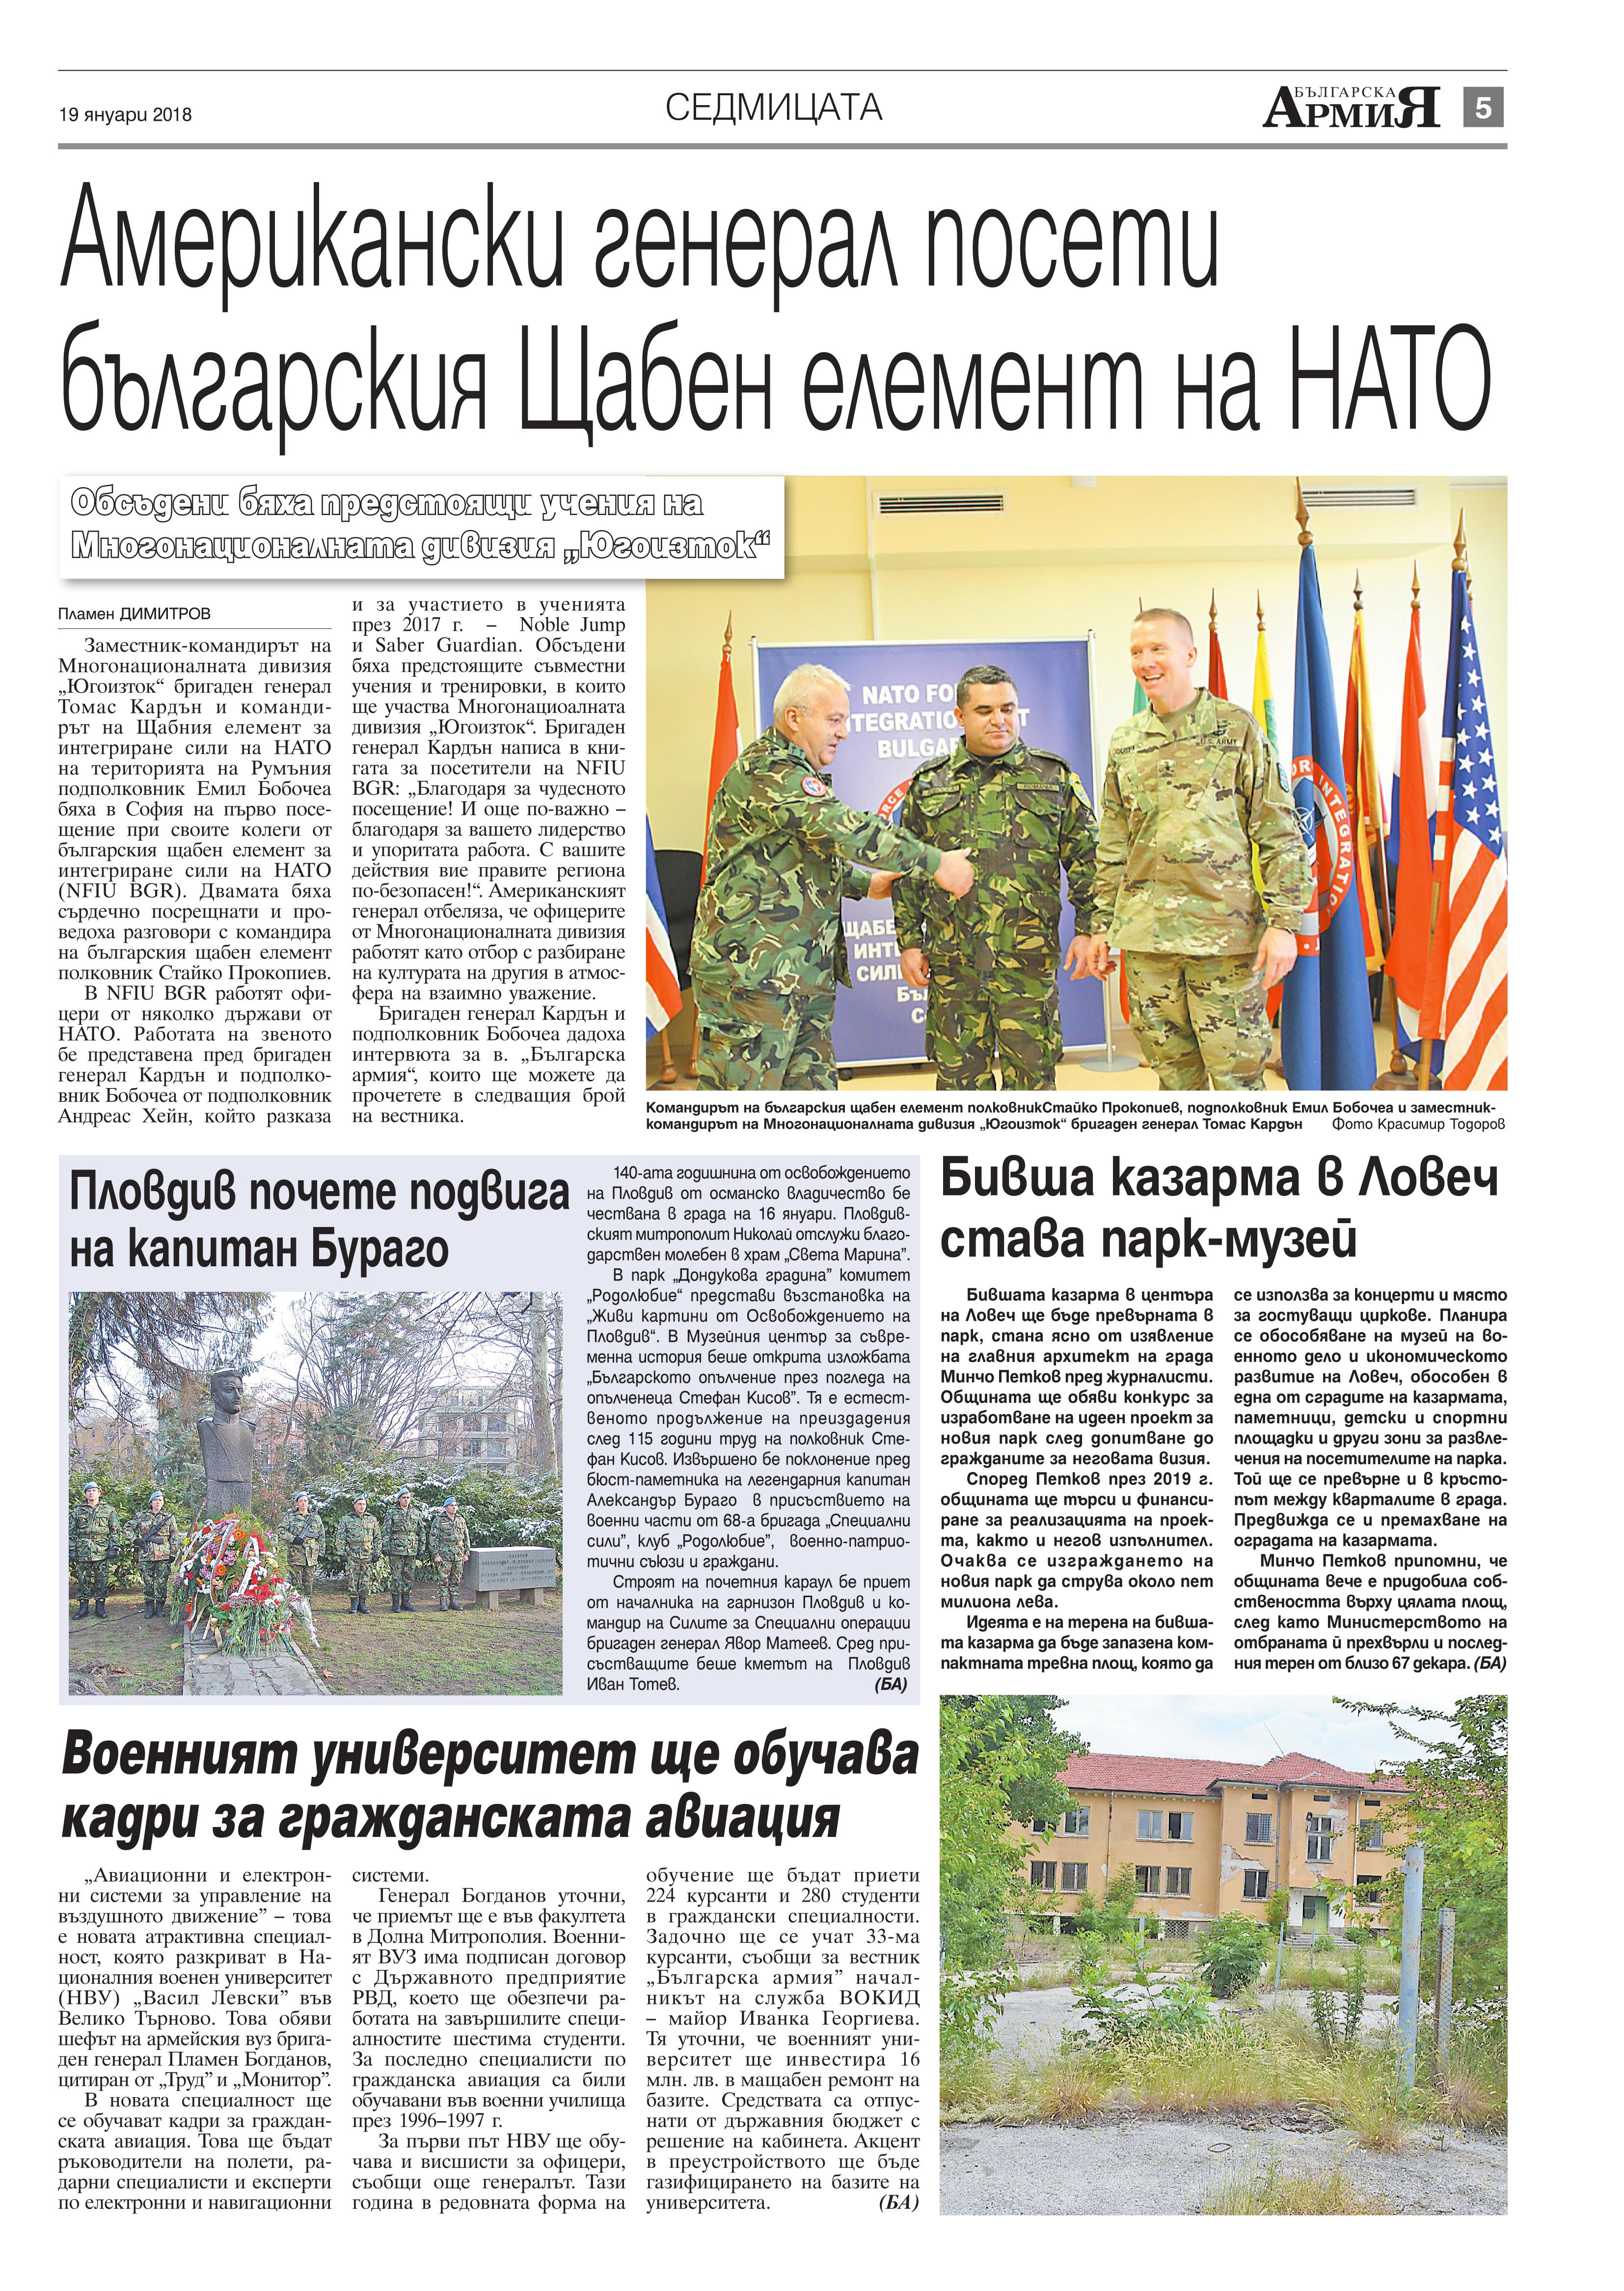 https://armymedia.bg/wp-content/uploads/2015/06/05.page1_-35.jpg